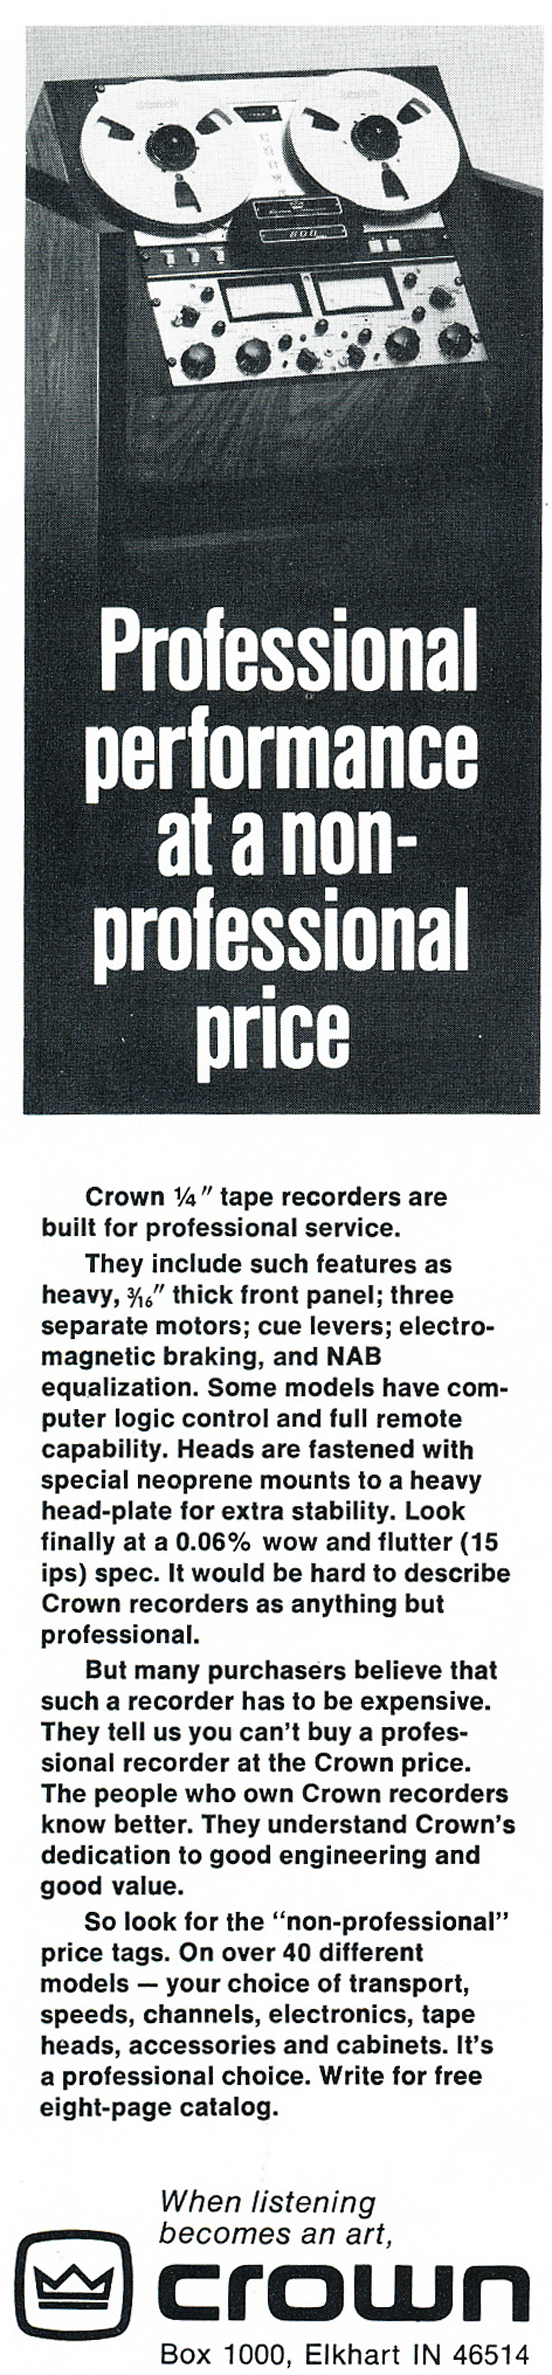 1975 Crown reel to reel tape recorder ad in the Reel2ReelTexas.com vintage recording collection